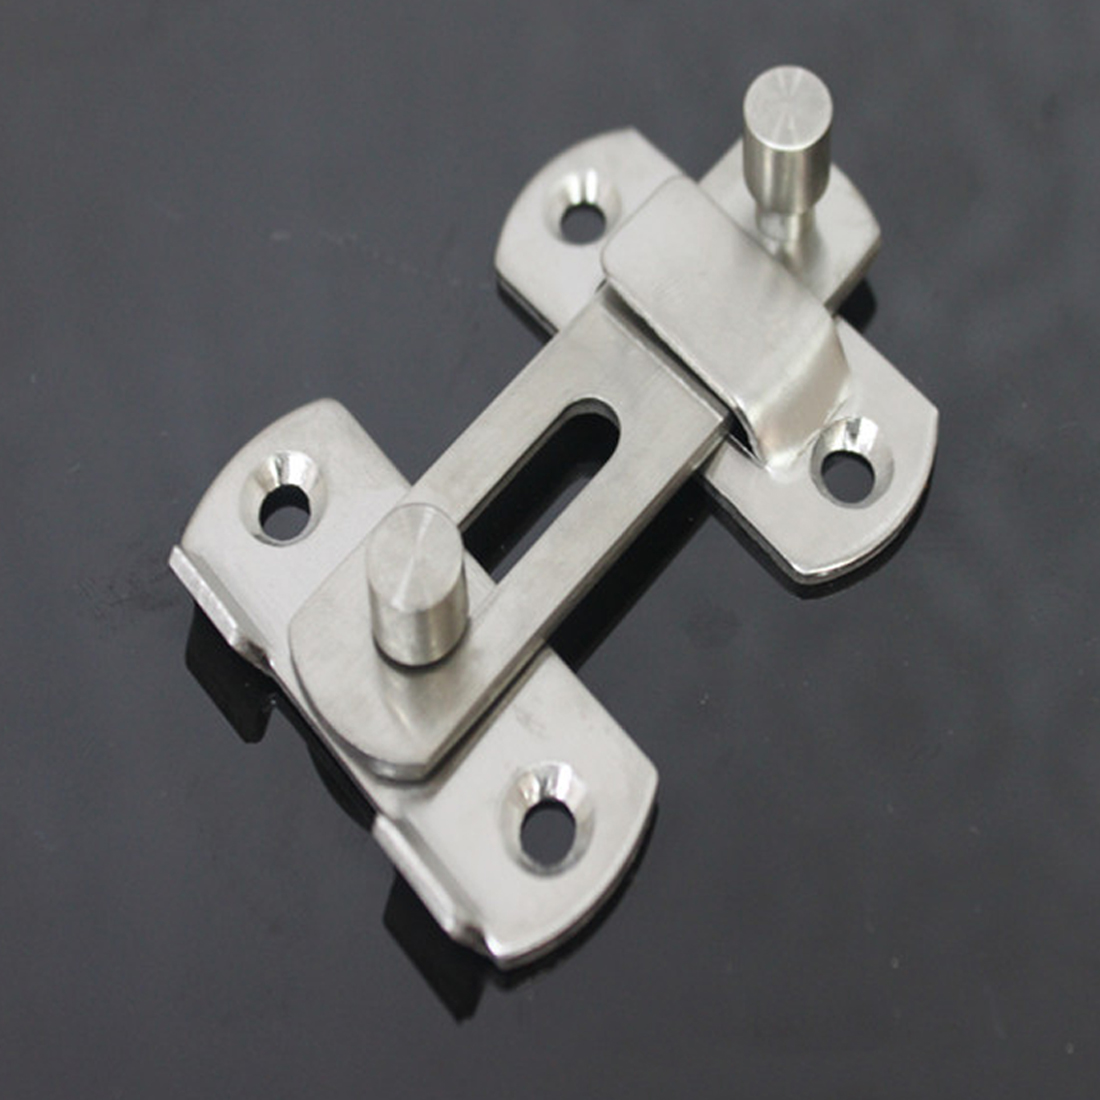 Hasp Latch Stainless Steel Hasp Latch Lock Sliding Door Lock For Window  Cabinet Fitting Room Accessorries Home Hardware